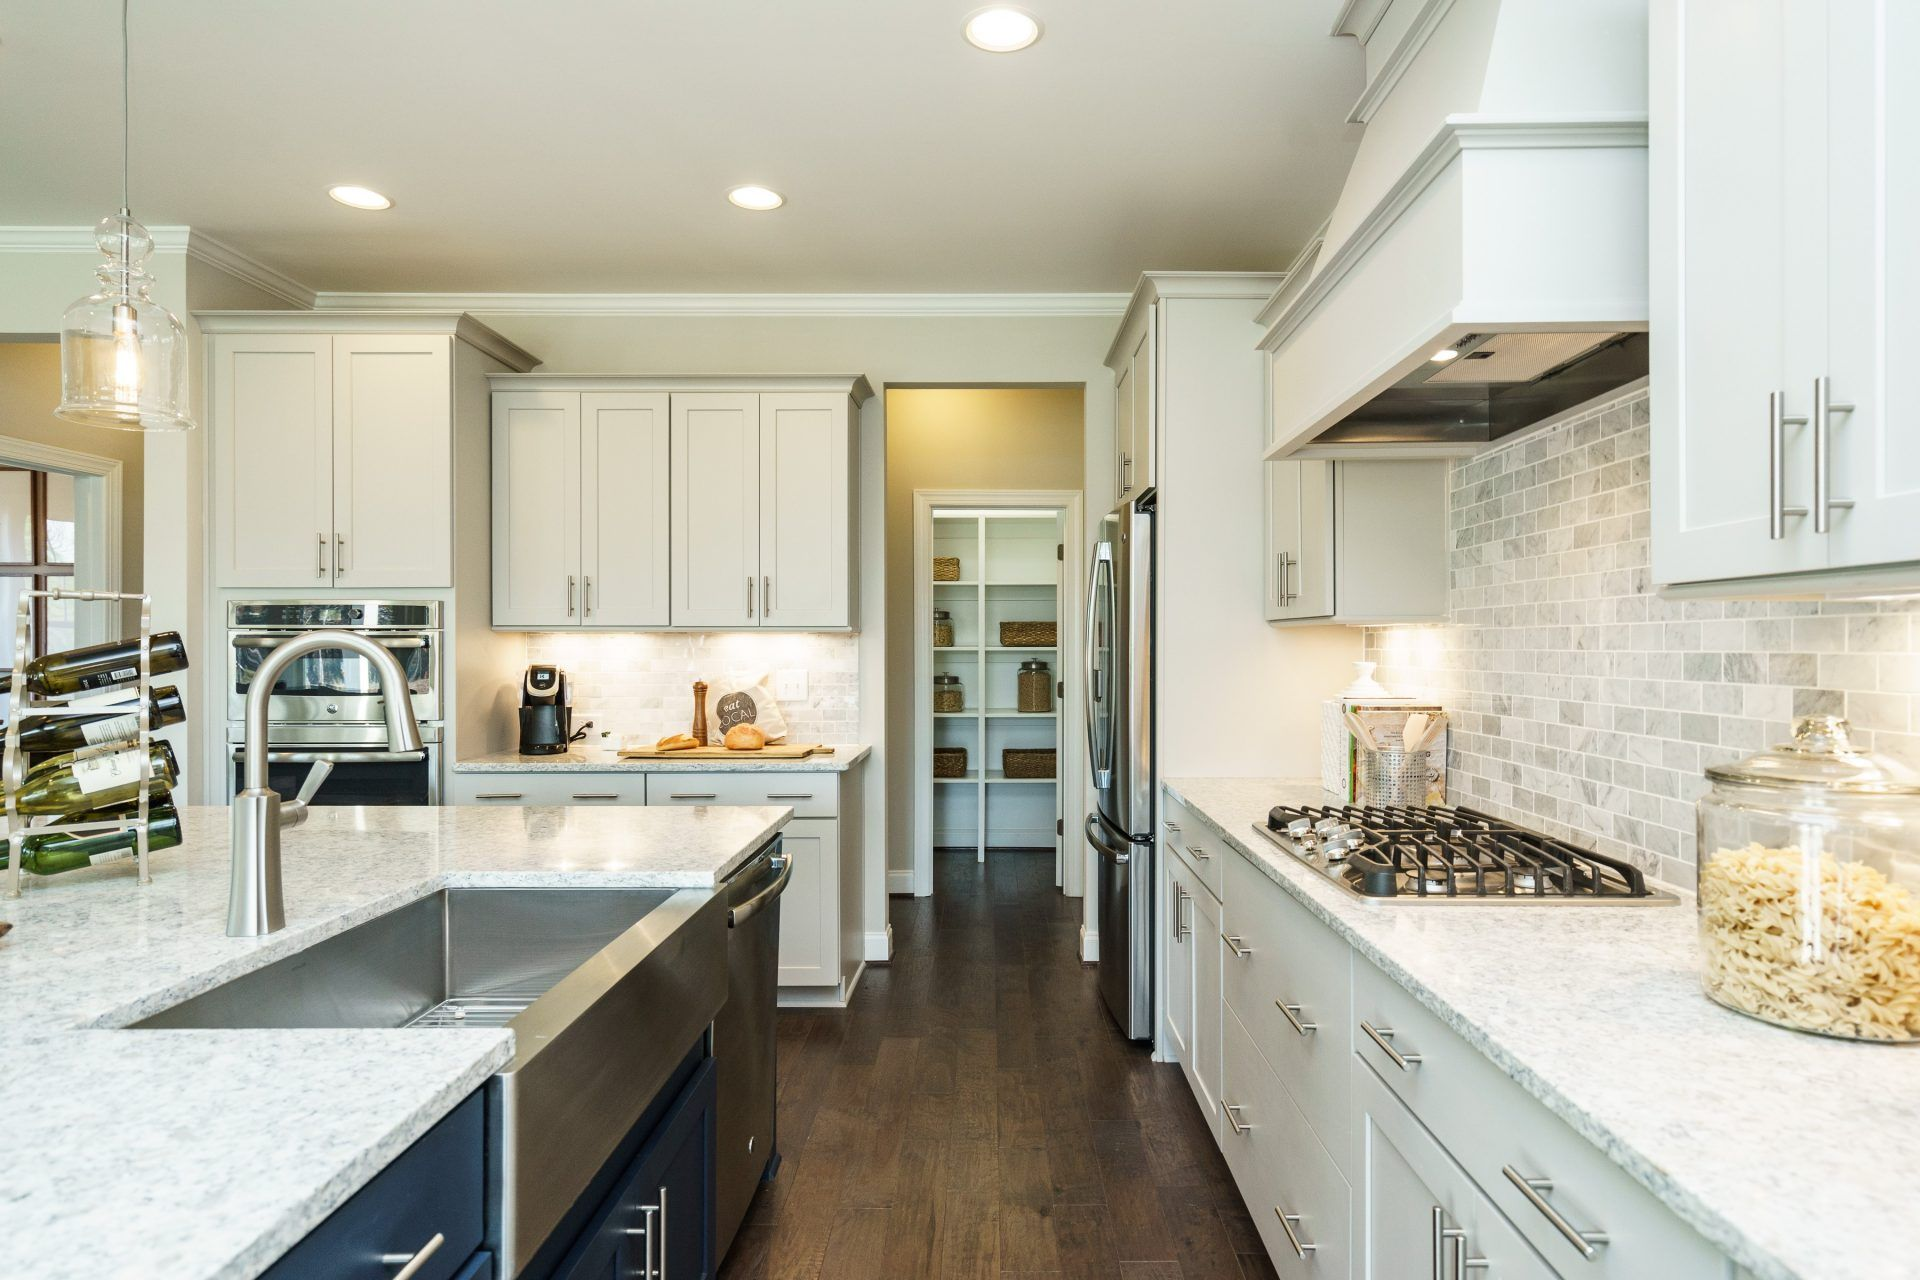 Kitchen featured in the Winslow By HHHunt Homes LLC in Richmond-Petersburg, VA